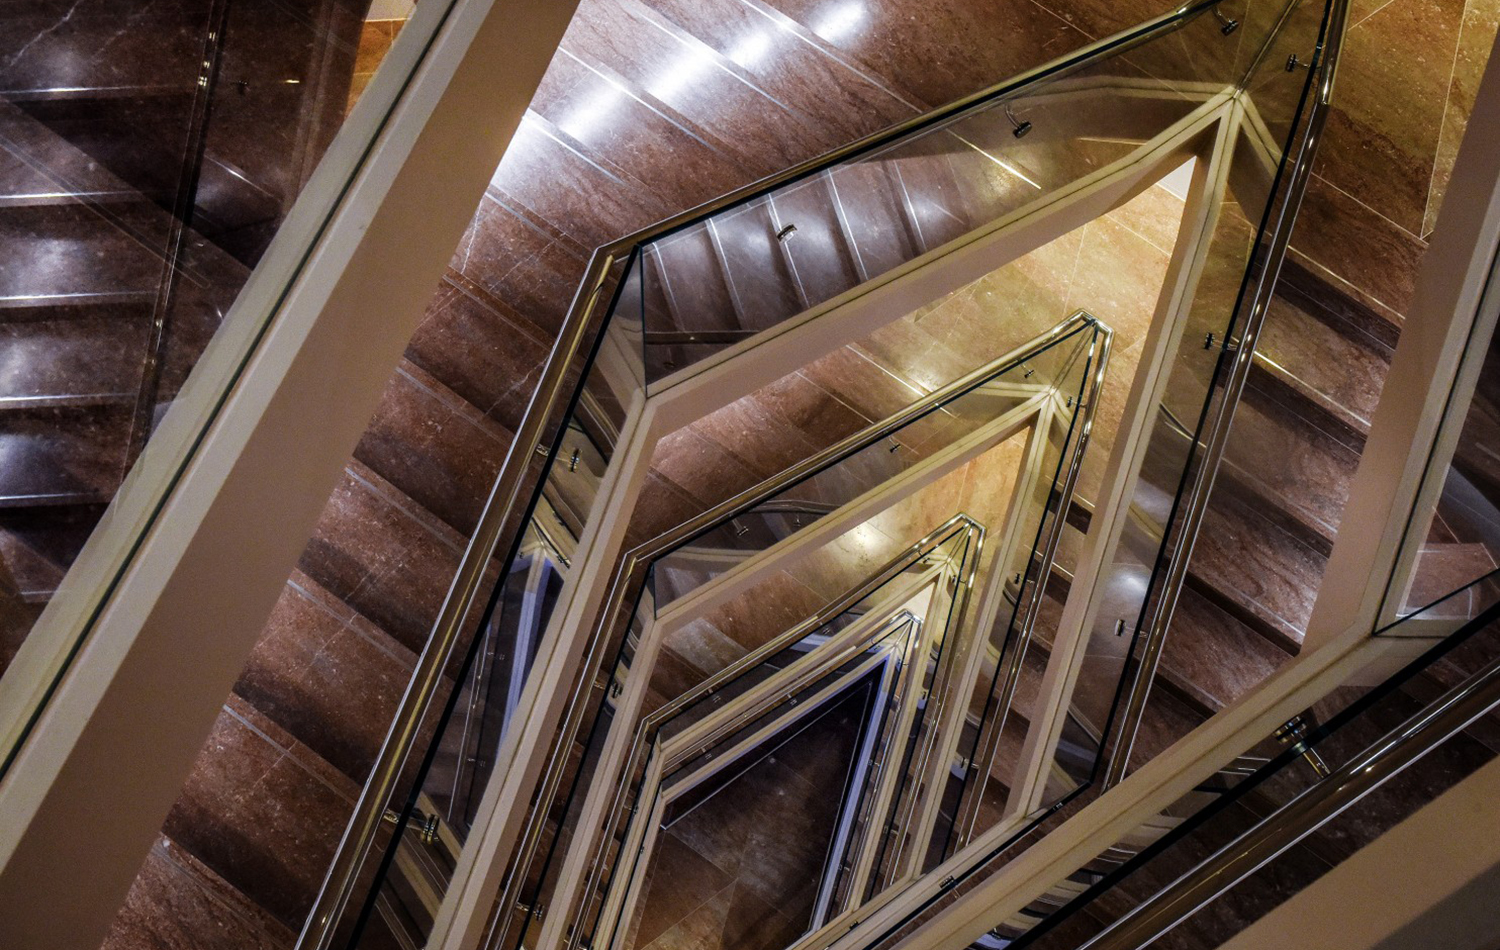 A view of the new diagonal staircase in the National Gallery of Art's East Building. (Bill O'Leary/The Washington Post)